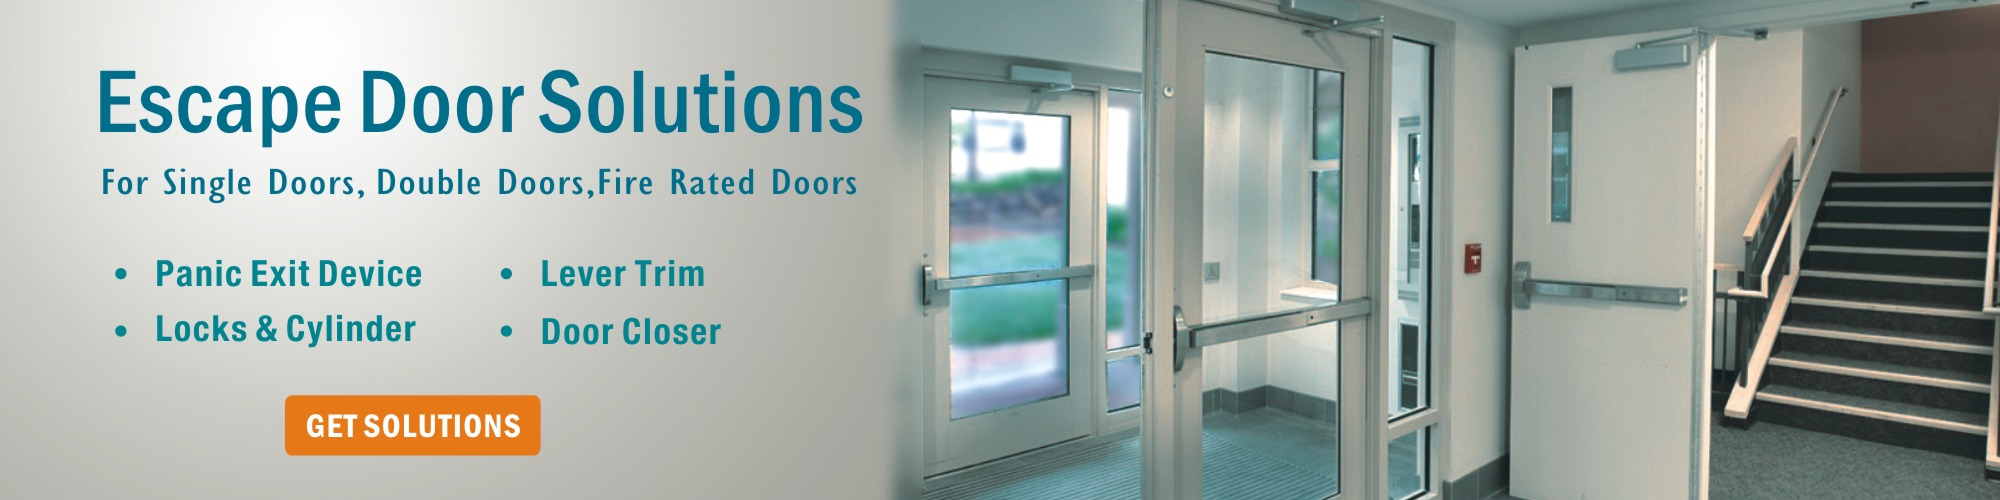 Escape Door solutions-D&D hardware-www.dndhardware.com